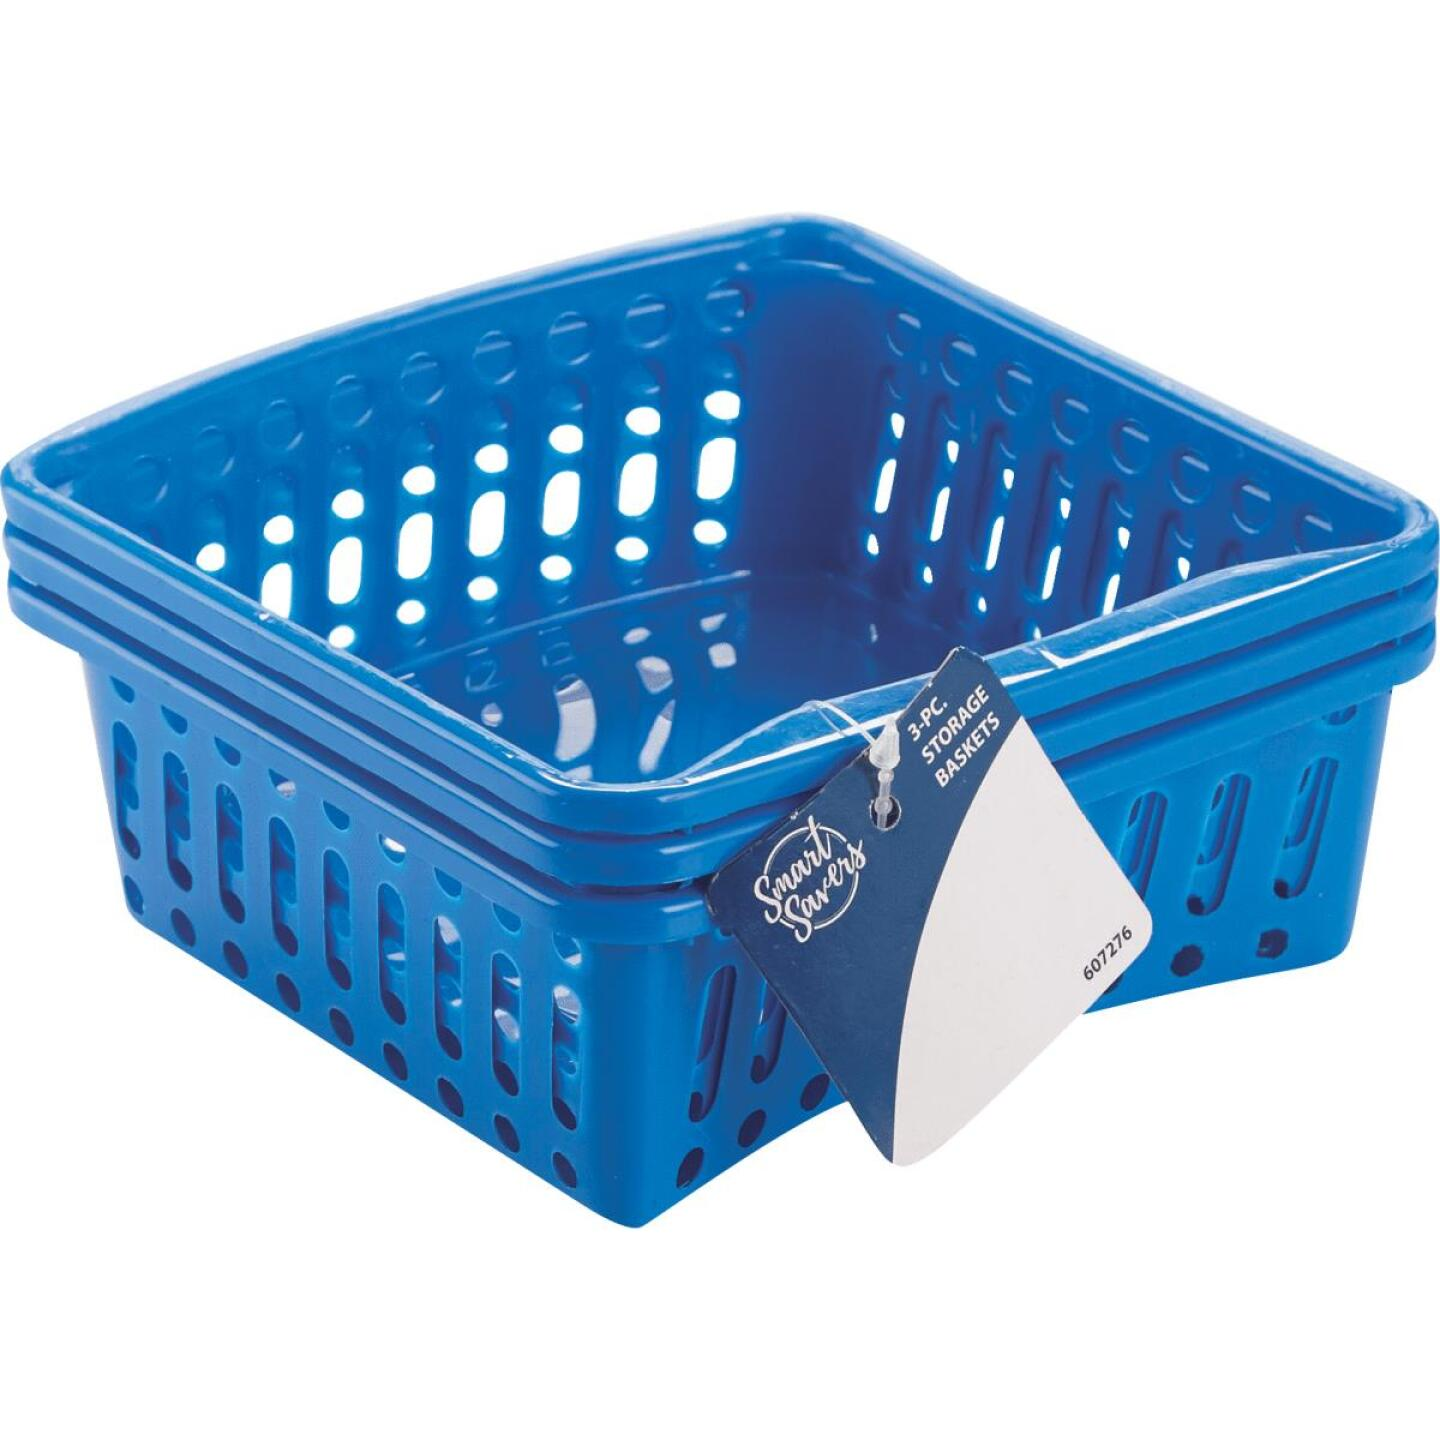 Smart Savers 5 In. W. x 2-1/3 In. H. x 6-1/2 In. L. Plastic Storage Basket (3-Pack) Image 1